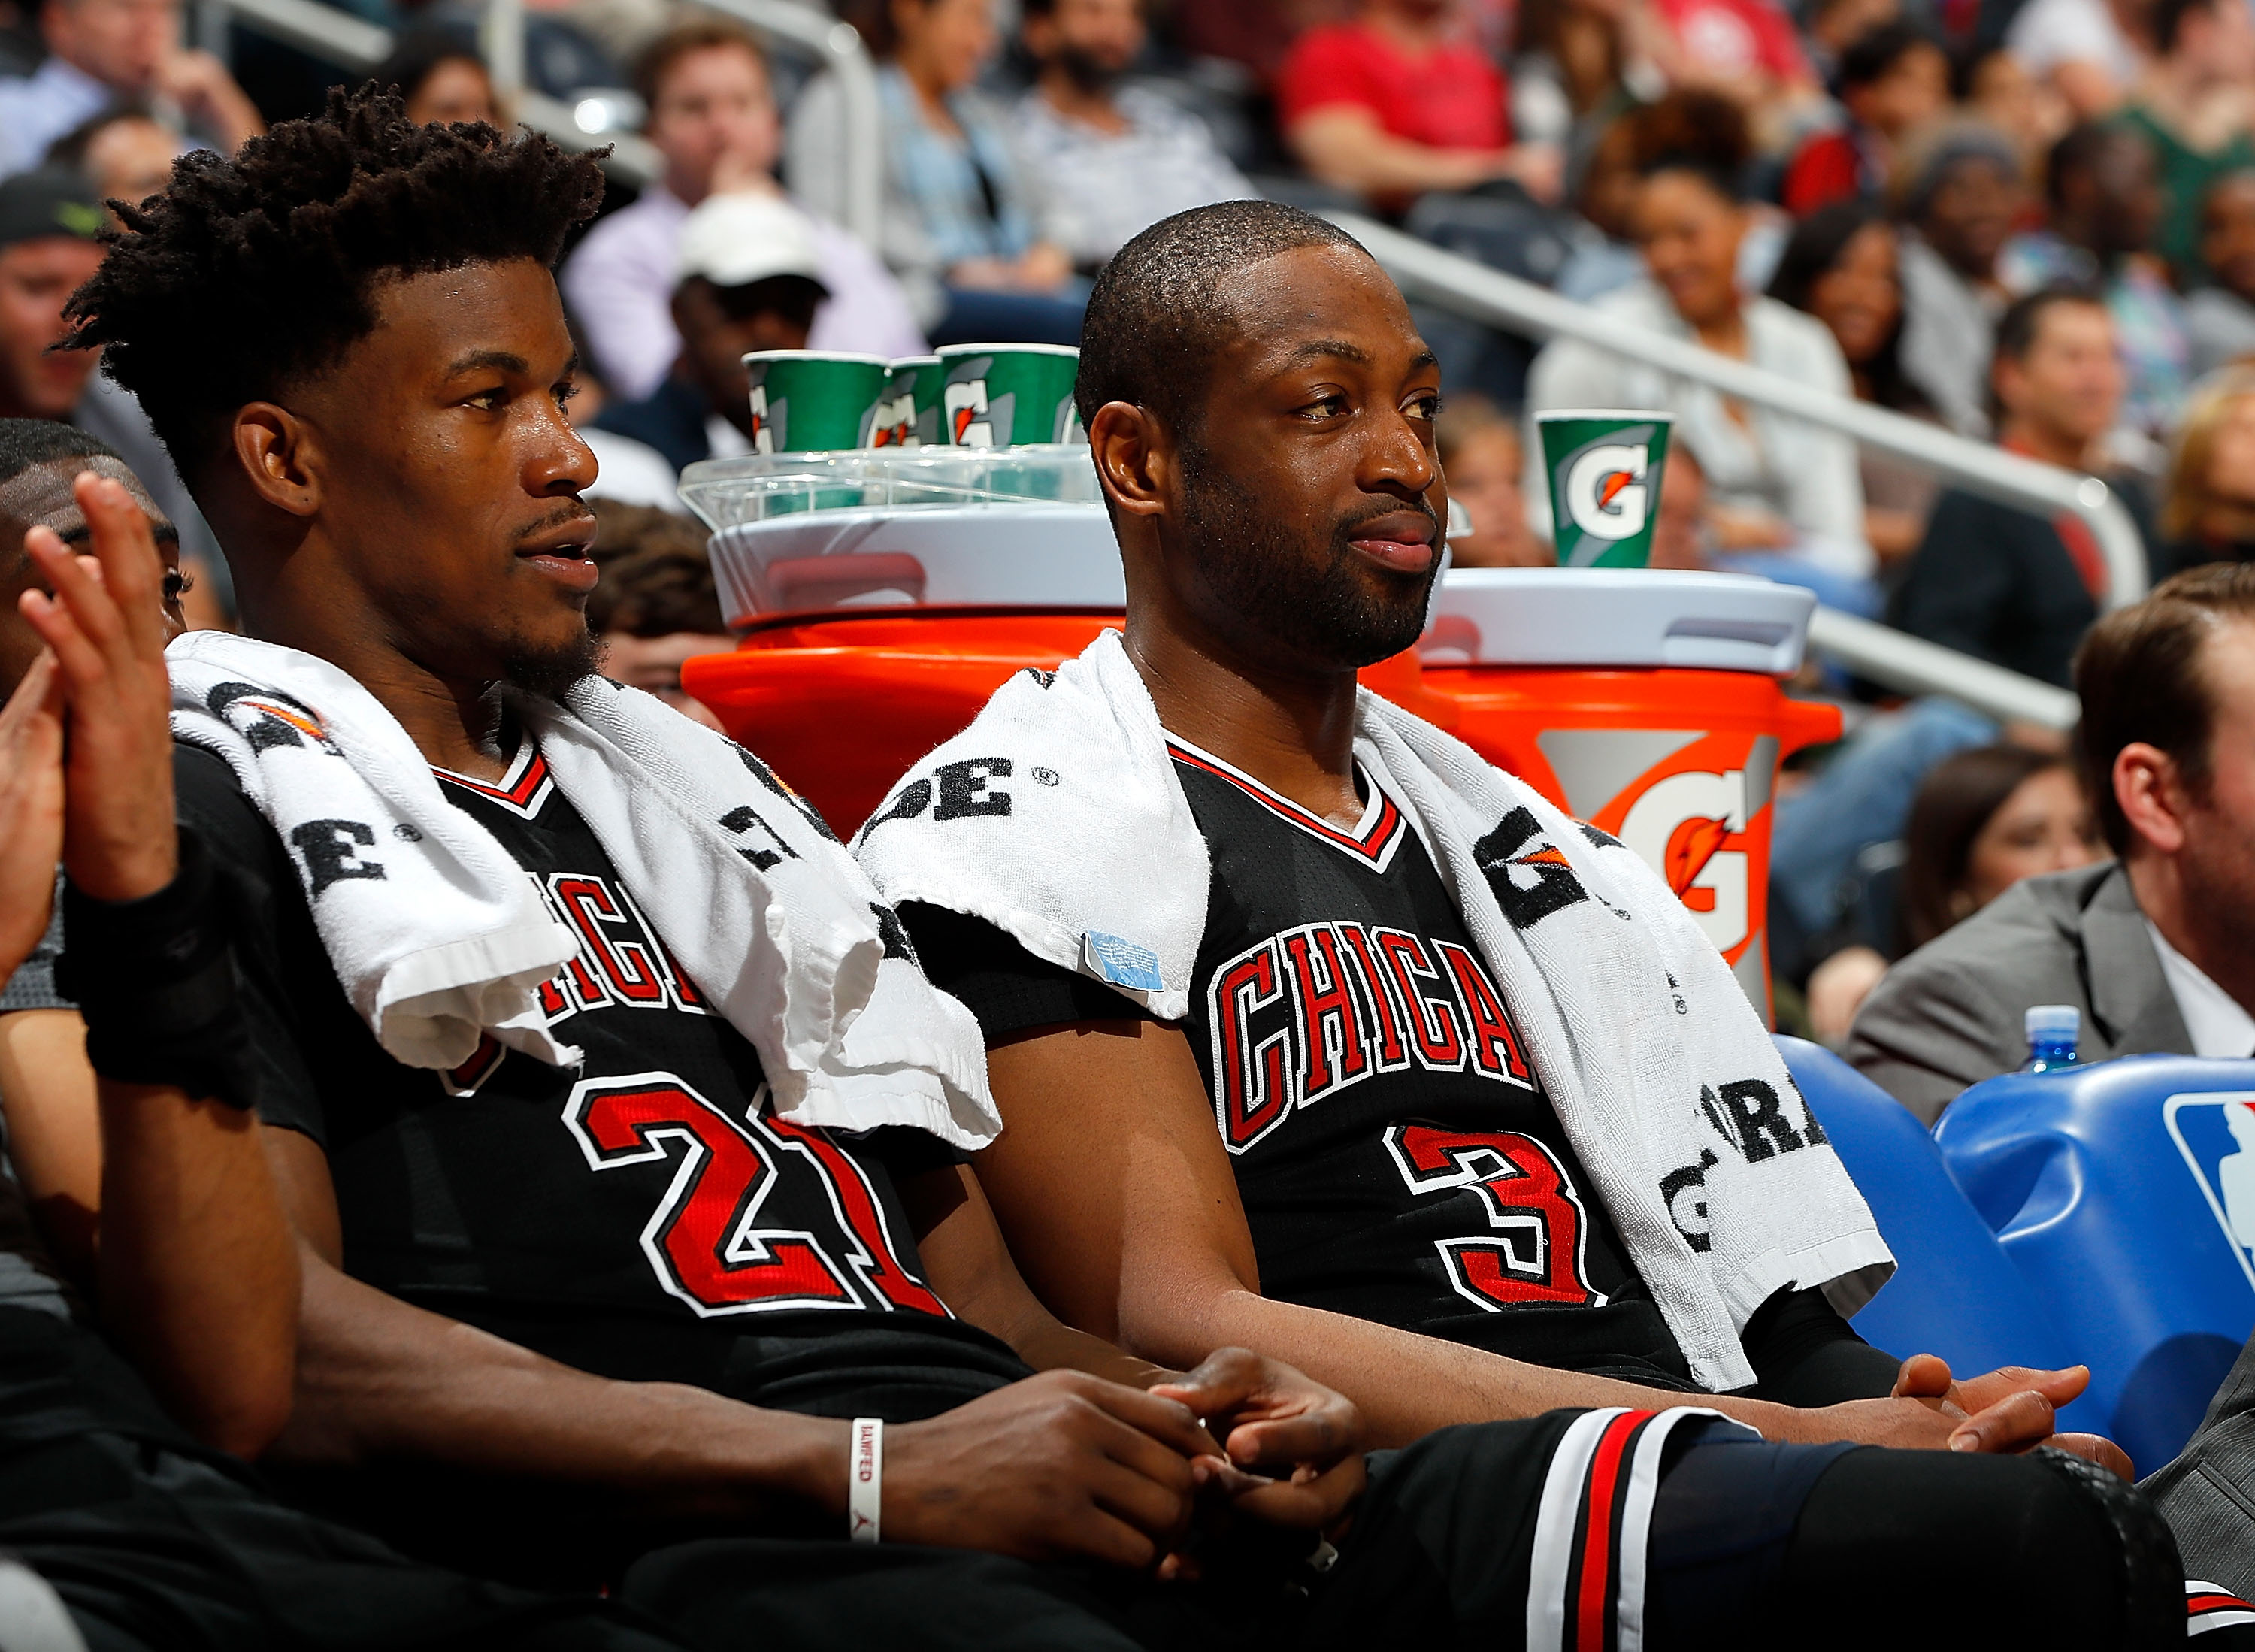 Jimmy Butler says he is 'cool' with Dwyane Wade following Instagram exchange